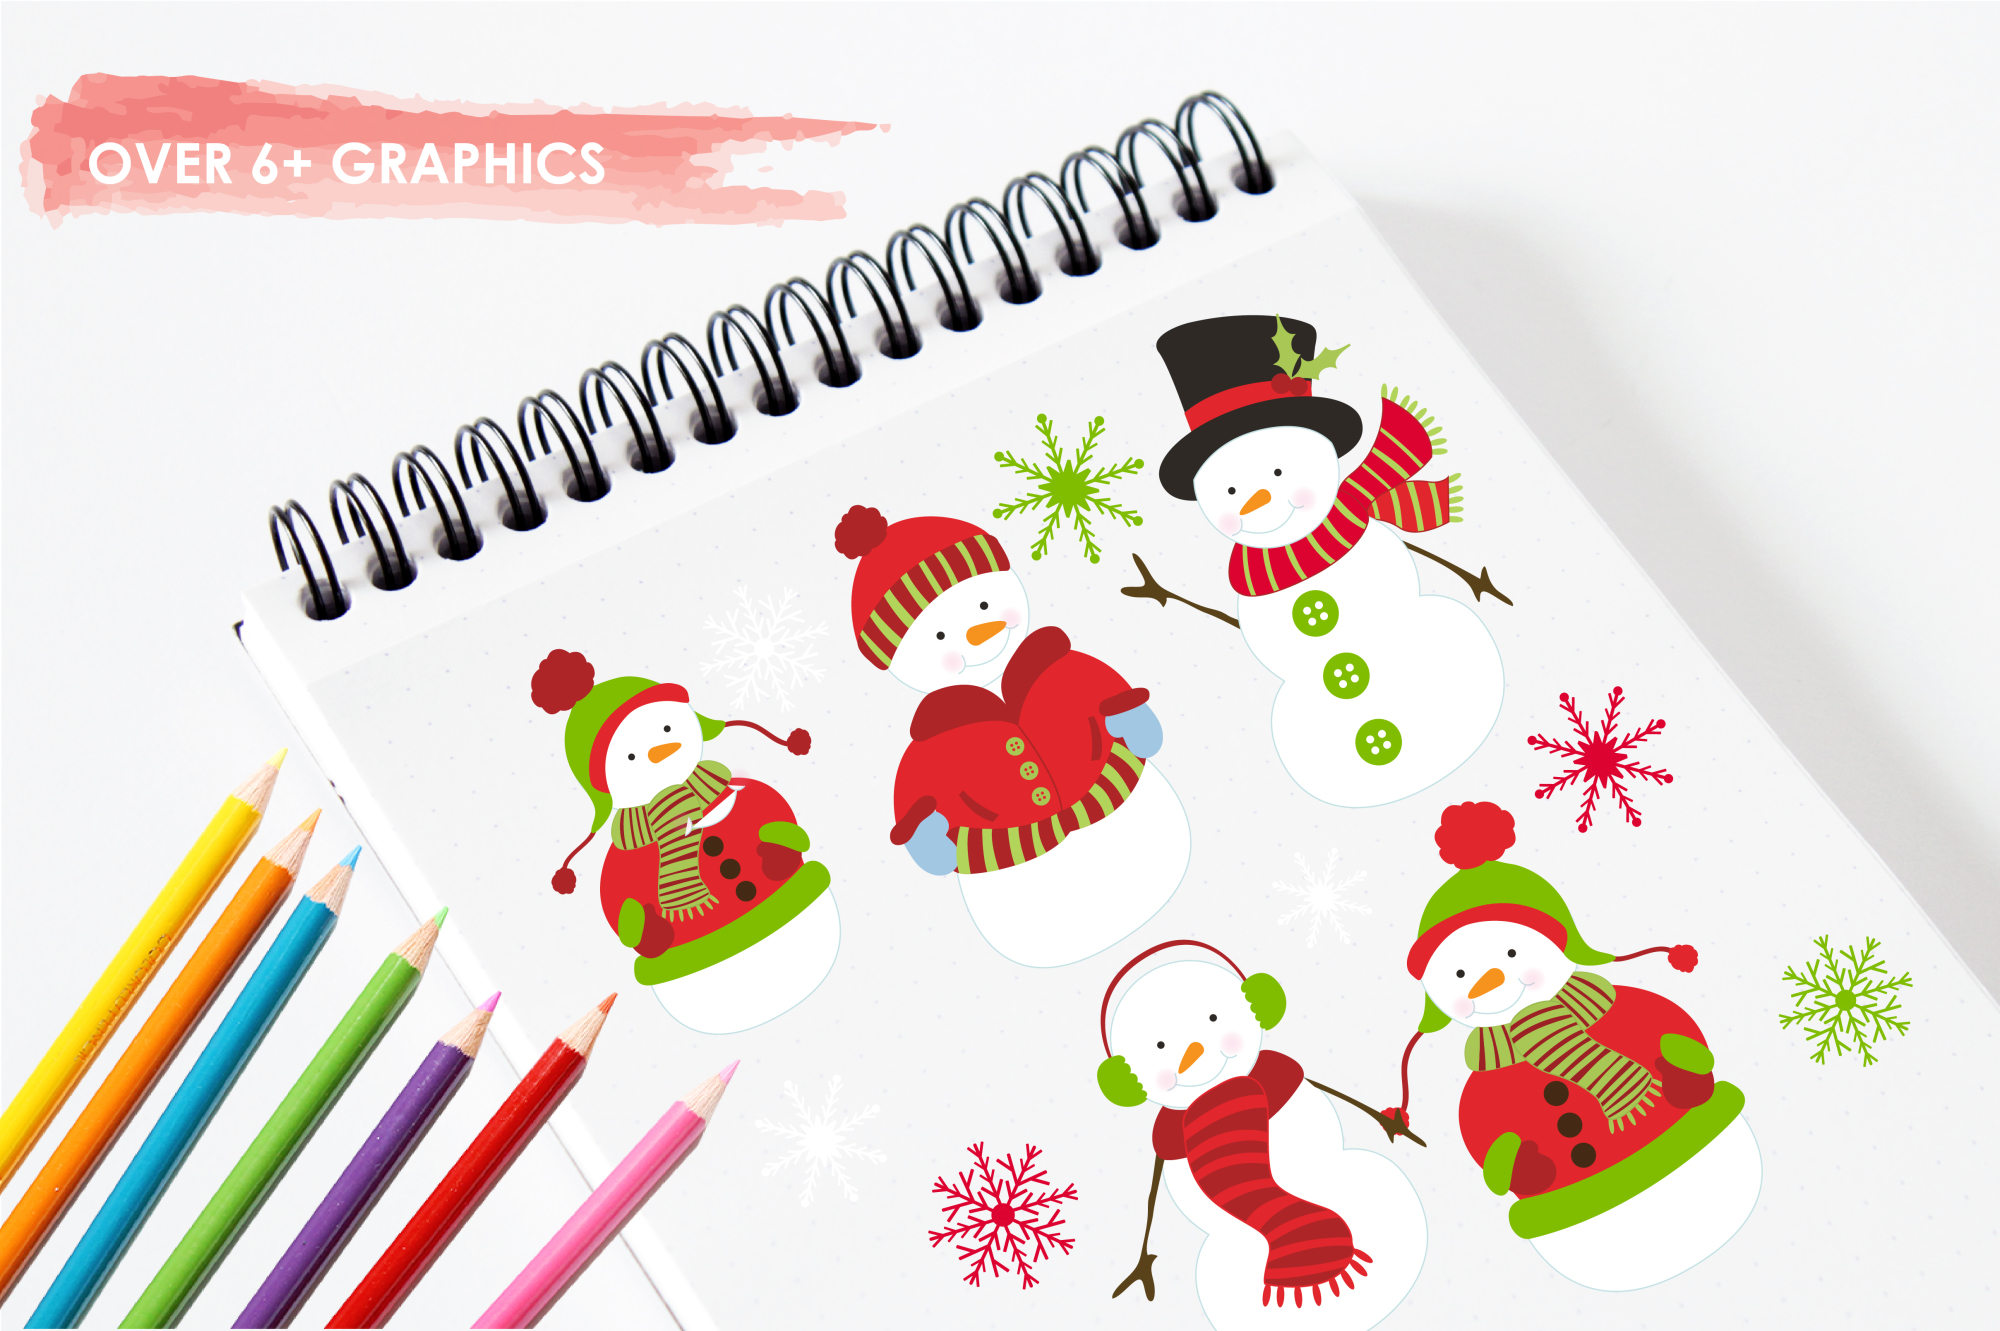 Mr. Snowman graphics and illustrations example image 3